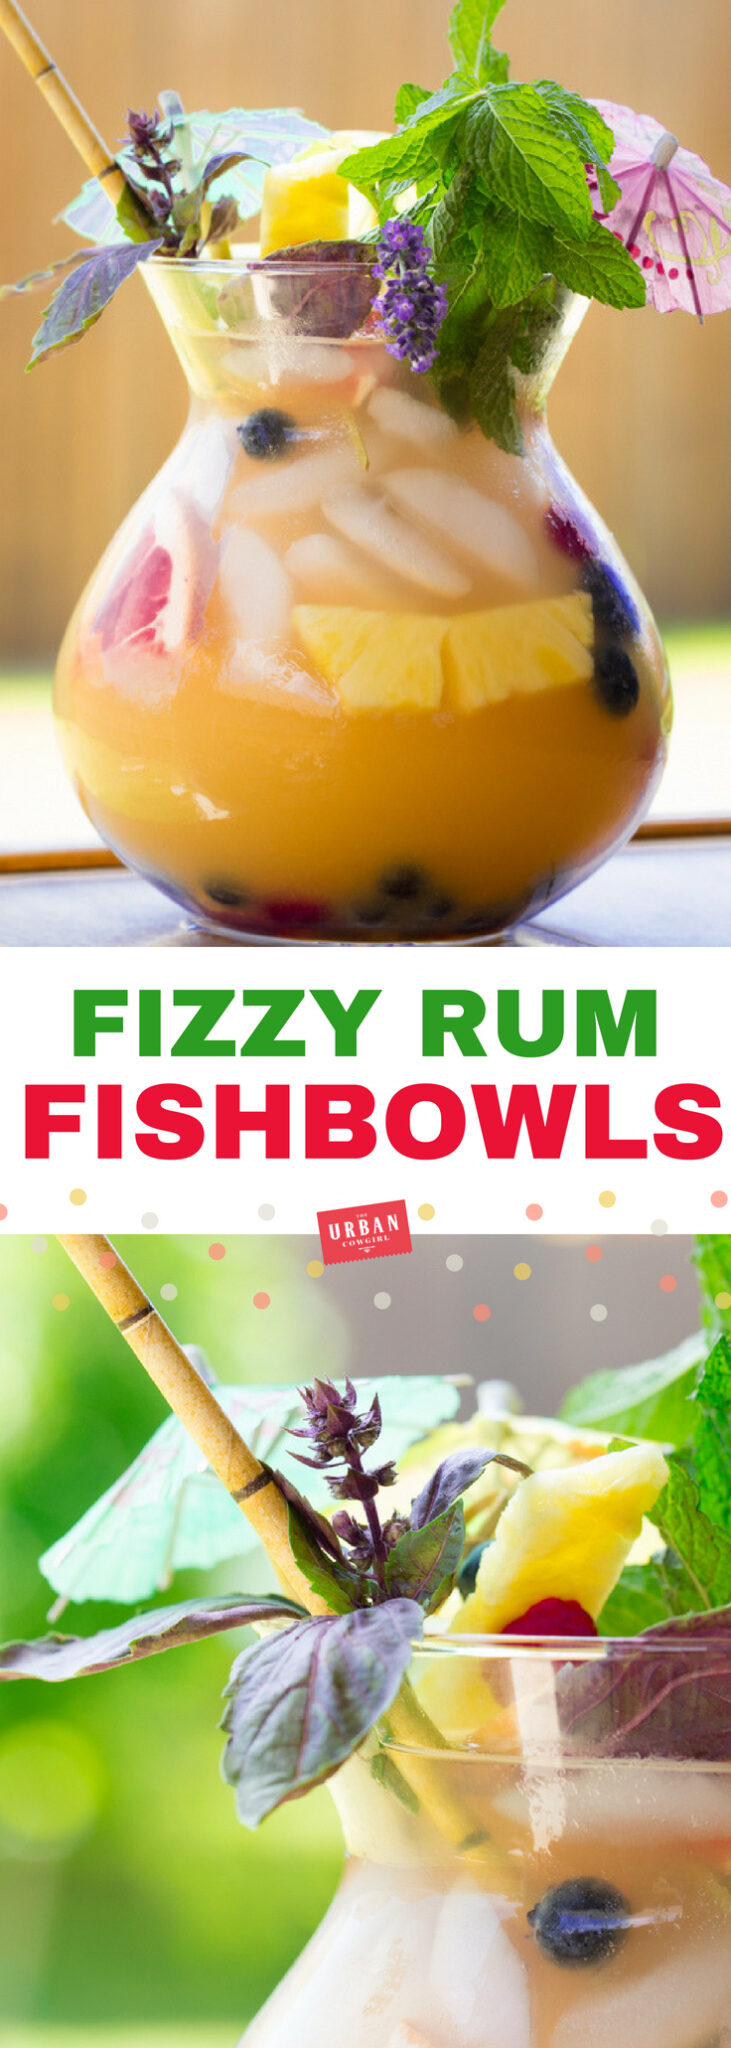 Fizzy Fishbowl Cocktail Recipe